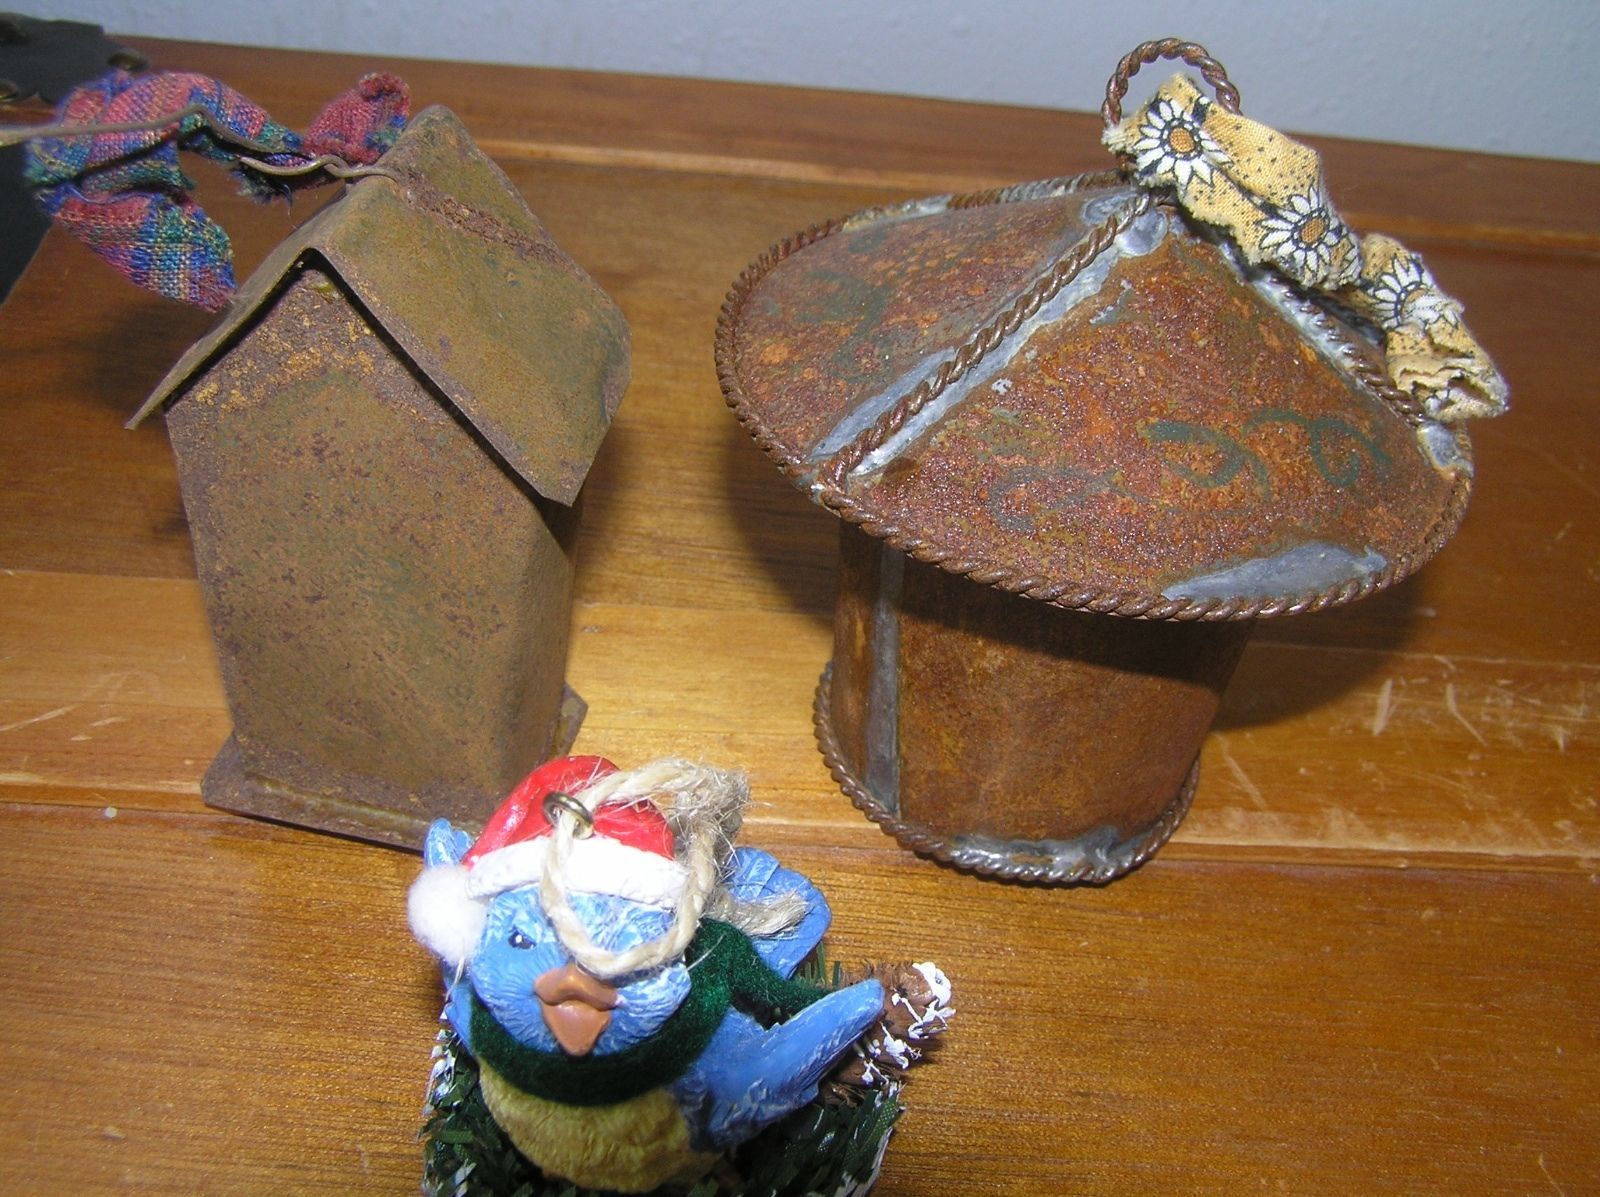 Lot of 2 Recycled Metal Birdhouses & Resin Bluebird Christmas Tree Ornaments –